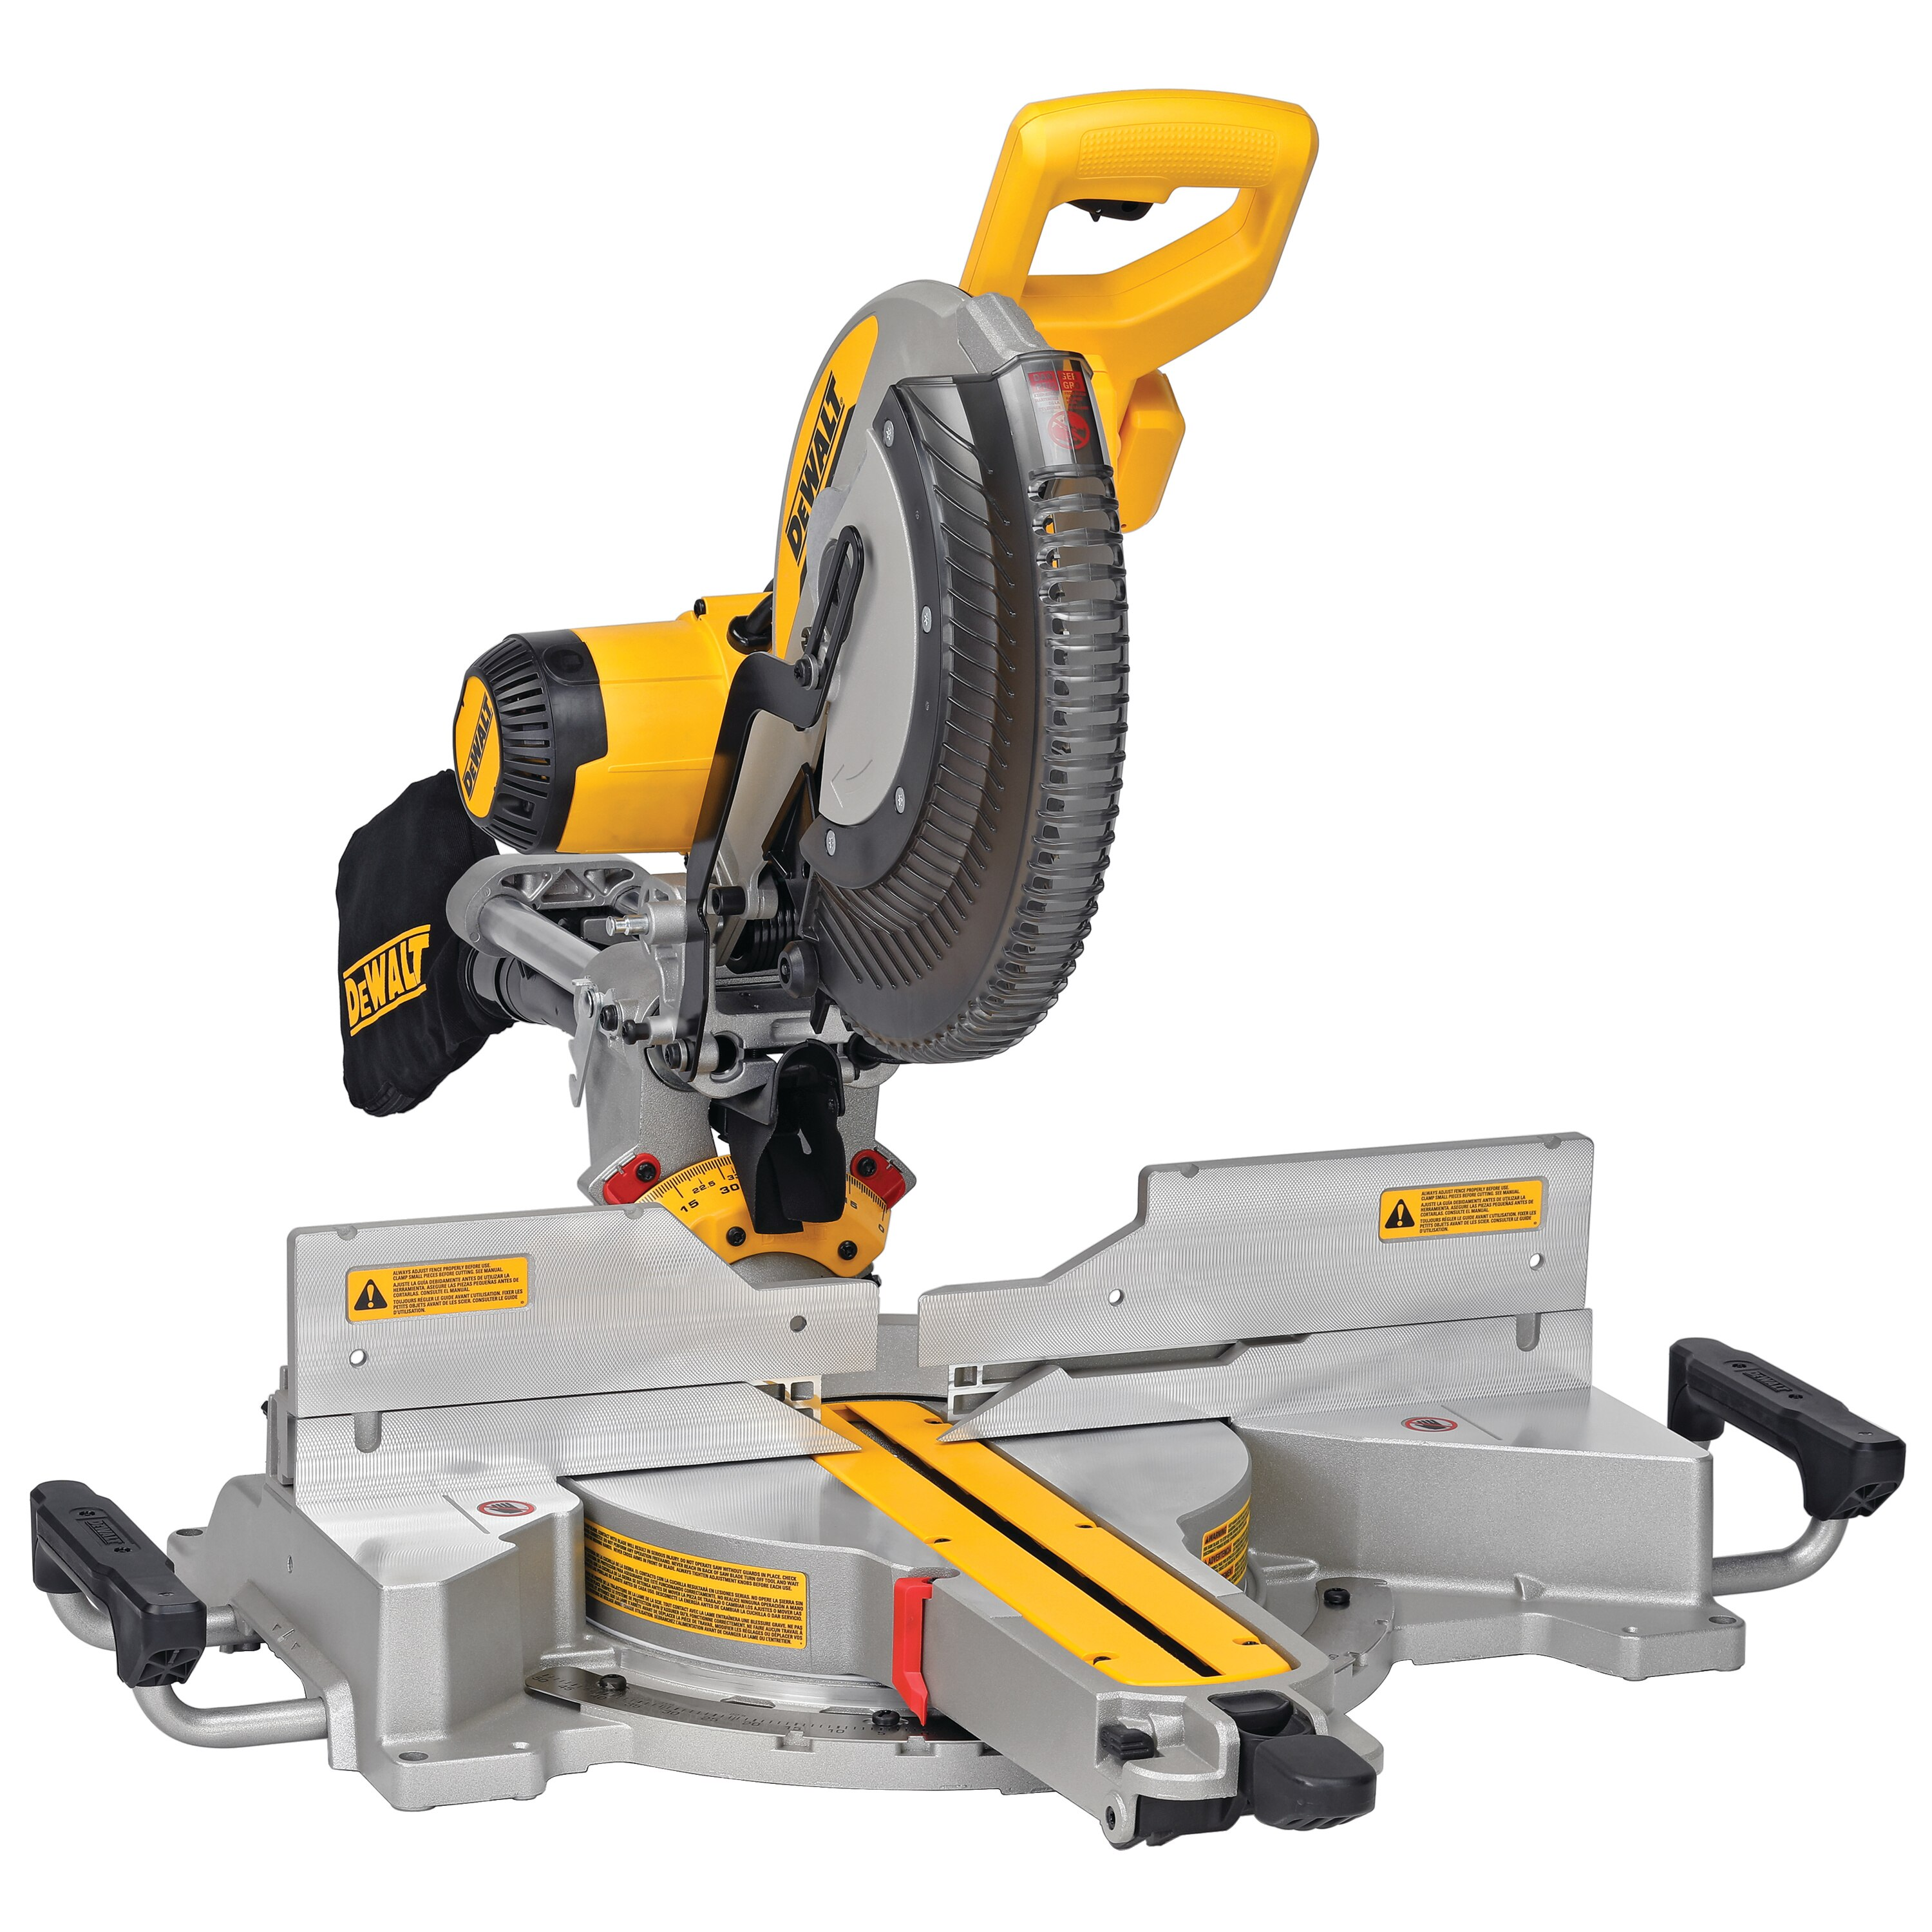 Isometric view of 12 inch compound mitre saw